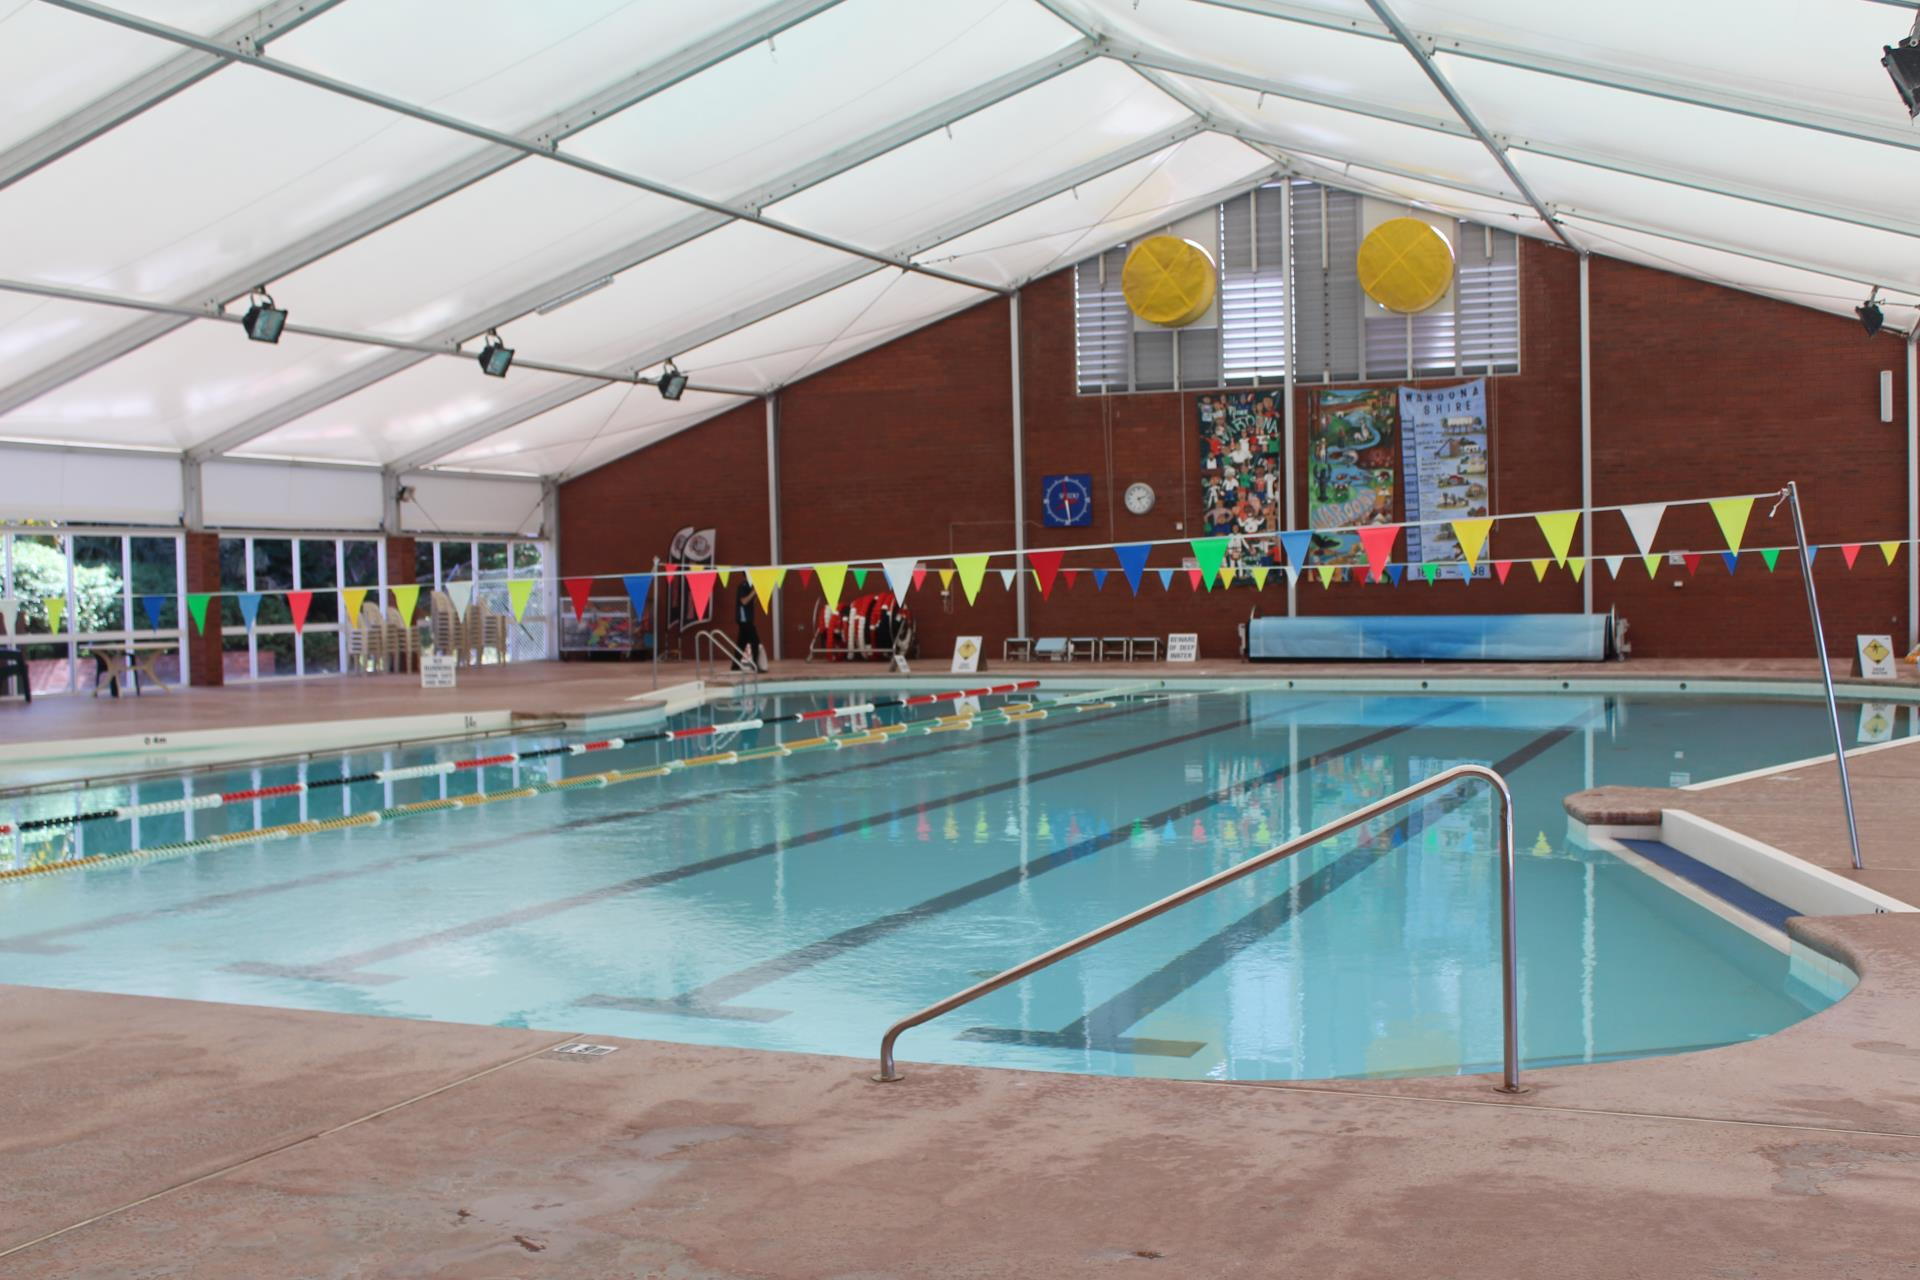 Replacement of Pool Liner at Waroona Recreation & Aquatic Centre